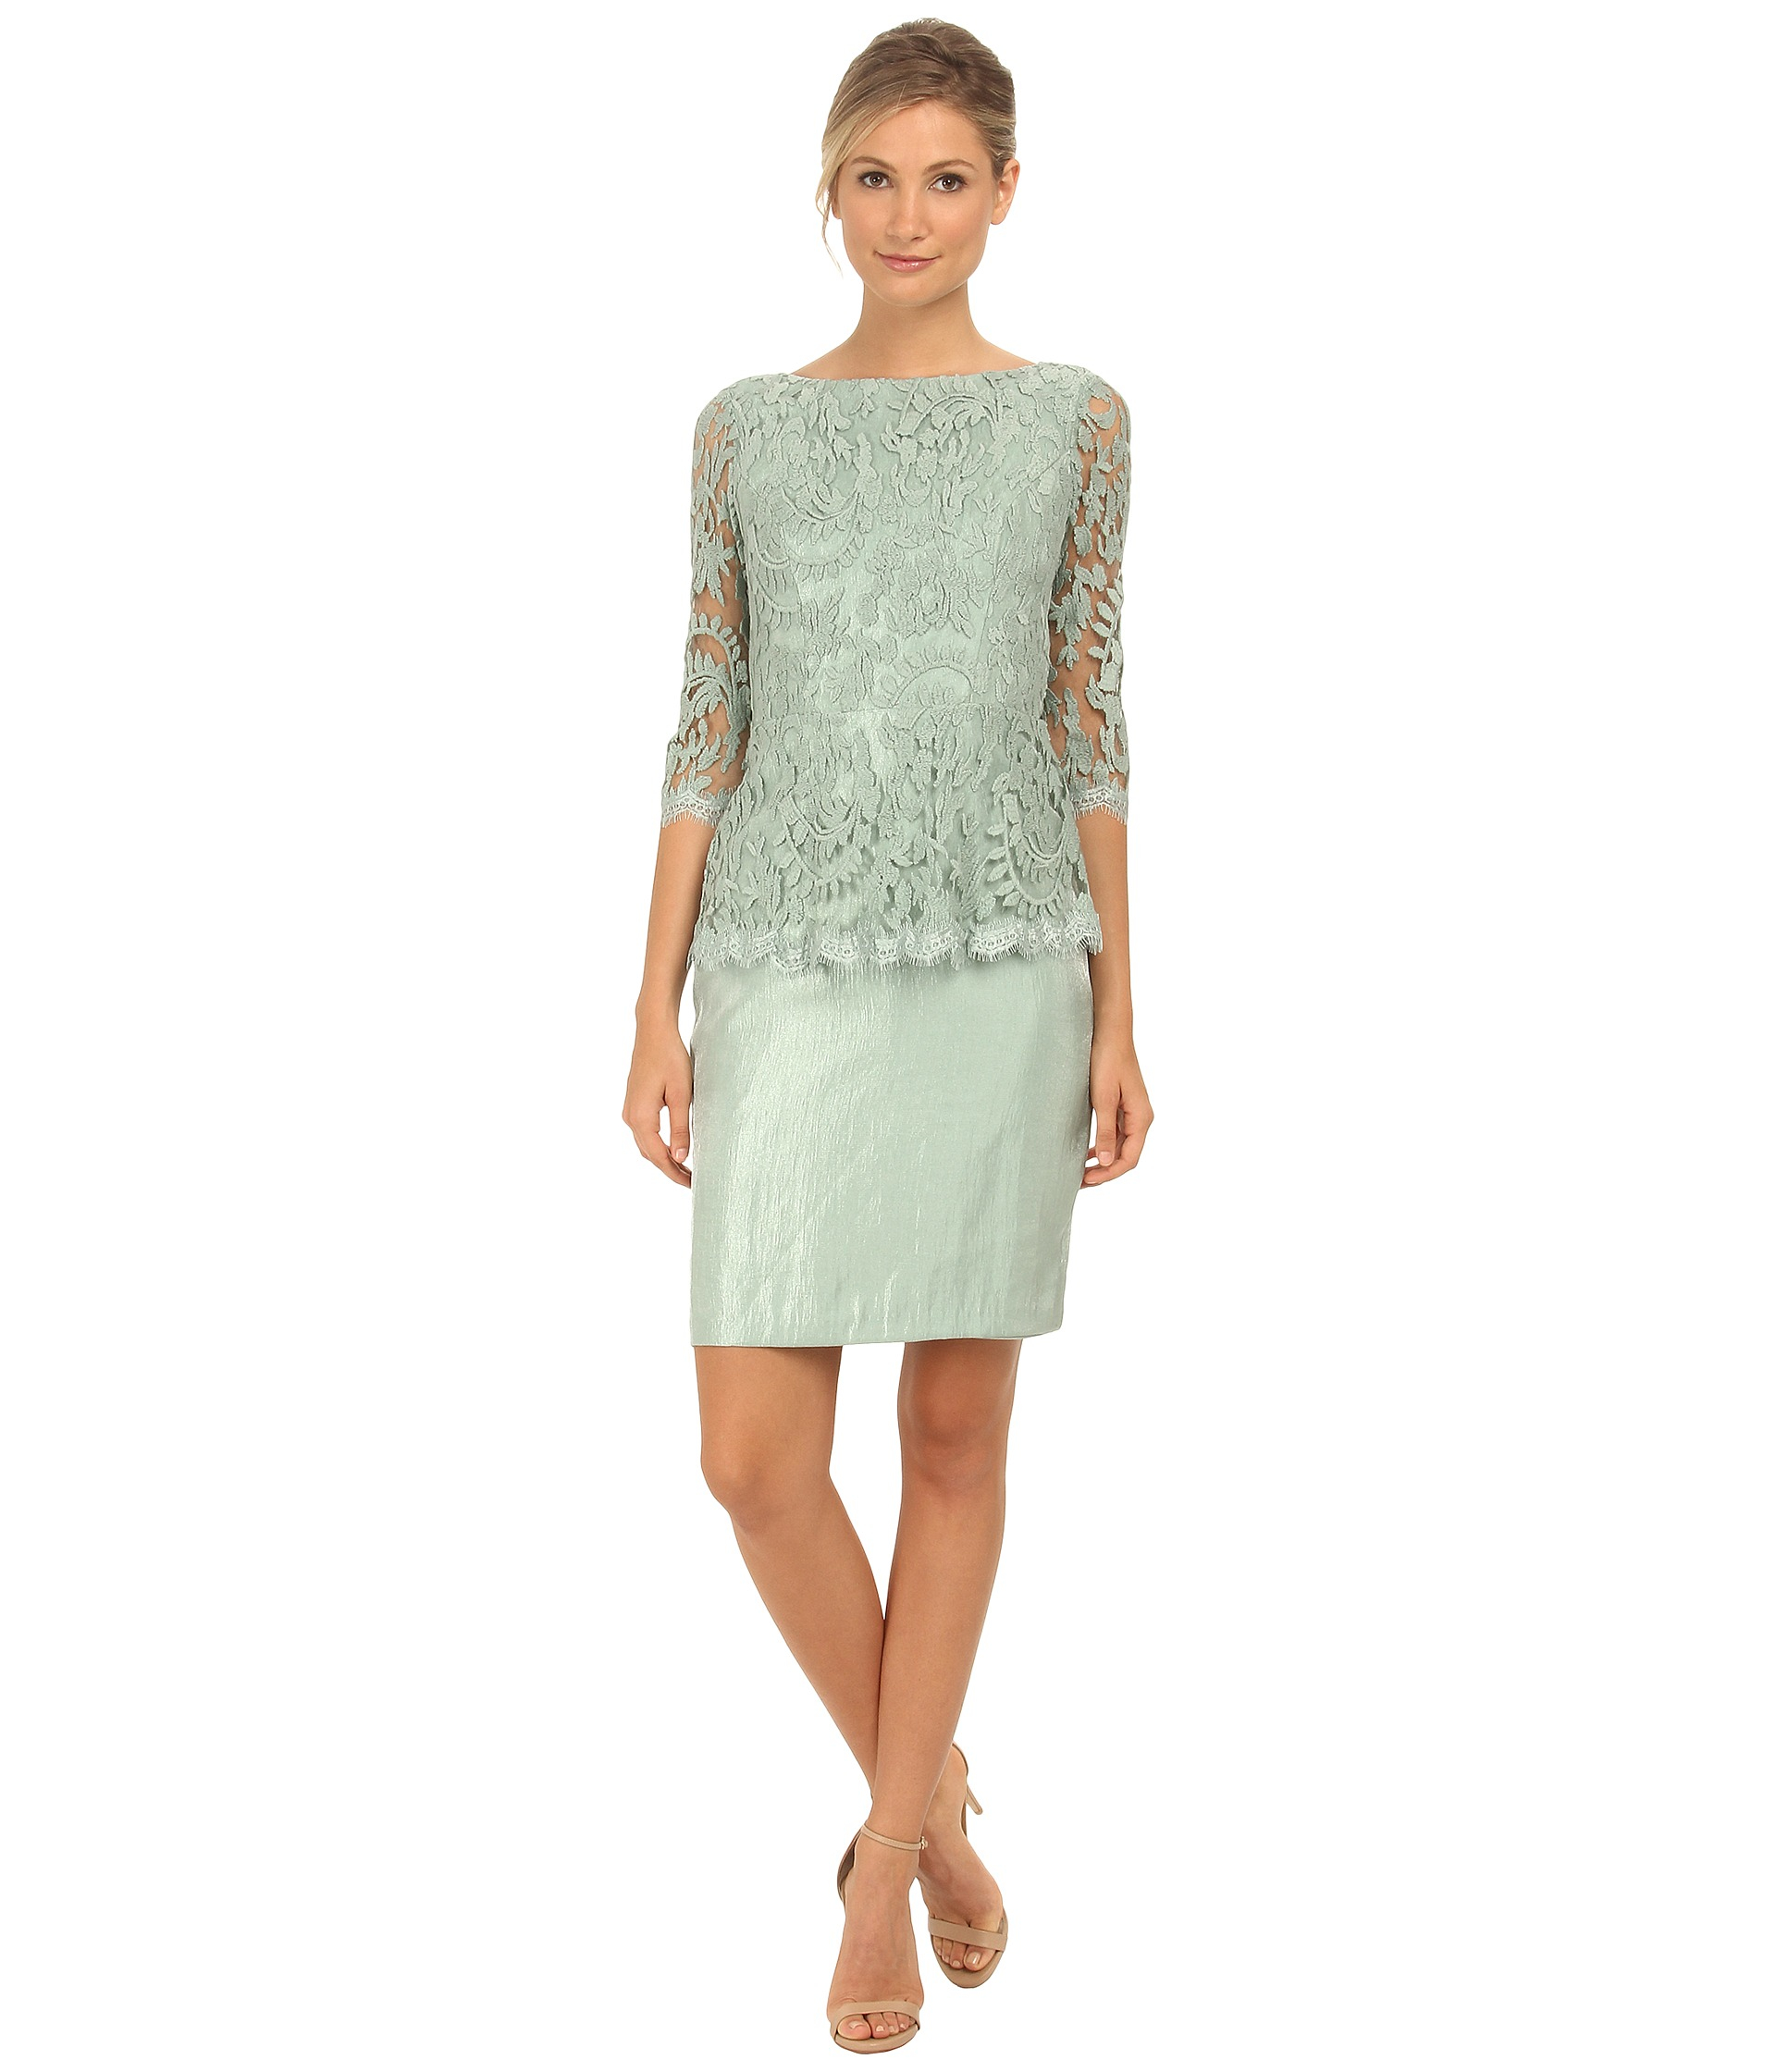 74506b8dfd78 Gallery. Previously sold at: Zappos · Women's Peplum Dresses Women's Adrianna  Papell Floral ...